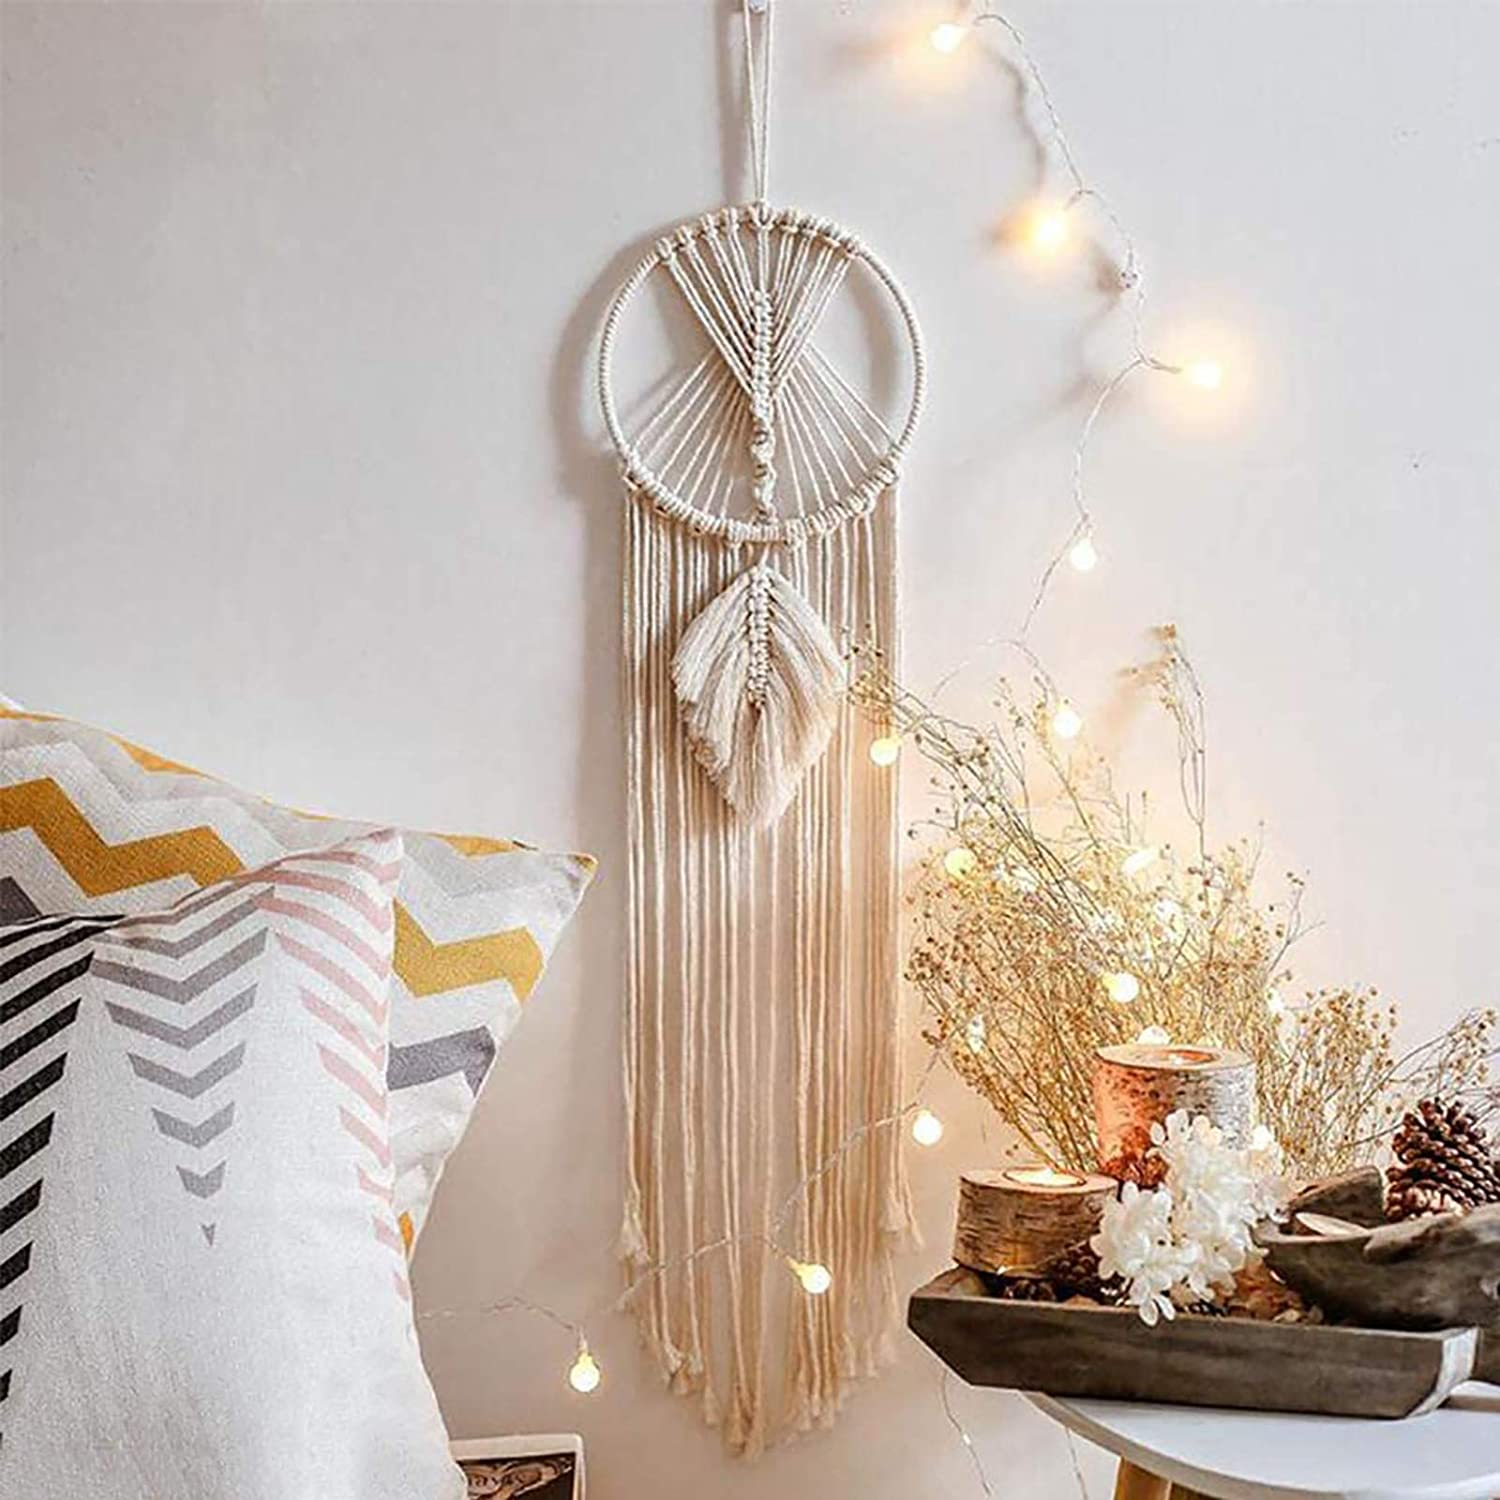 Enmolove Macrame Dream Catcher Wall Decor Handmade Bohemian Home Decor Tassel Wall Hangings Wedding Ornament (Geometric)